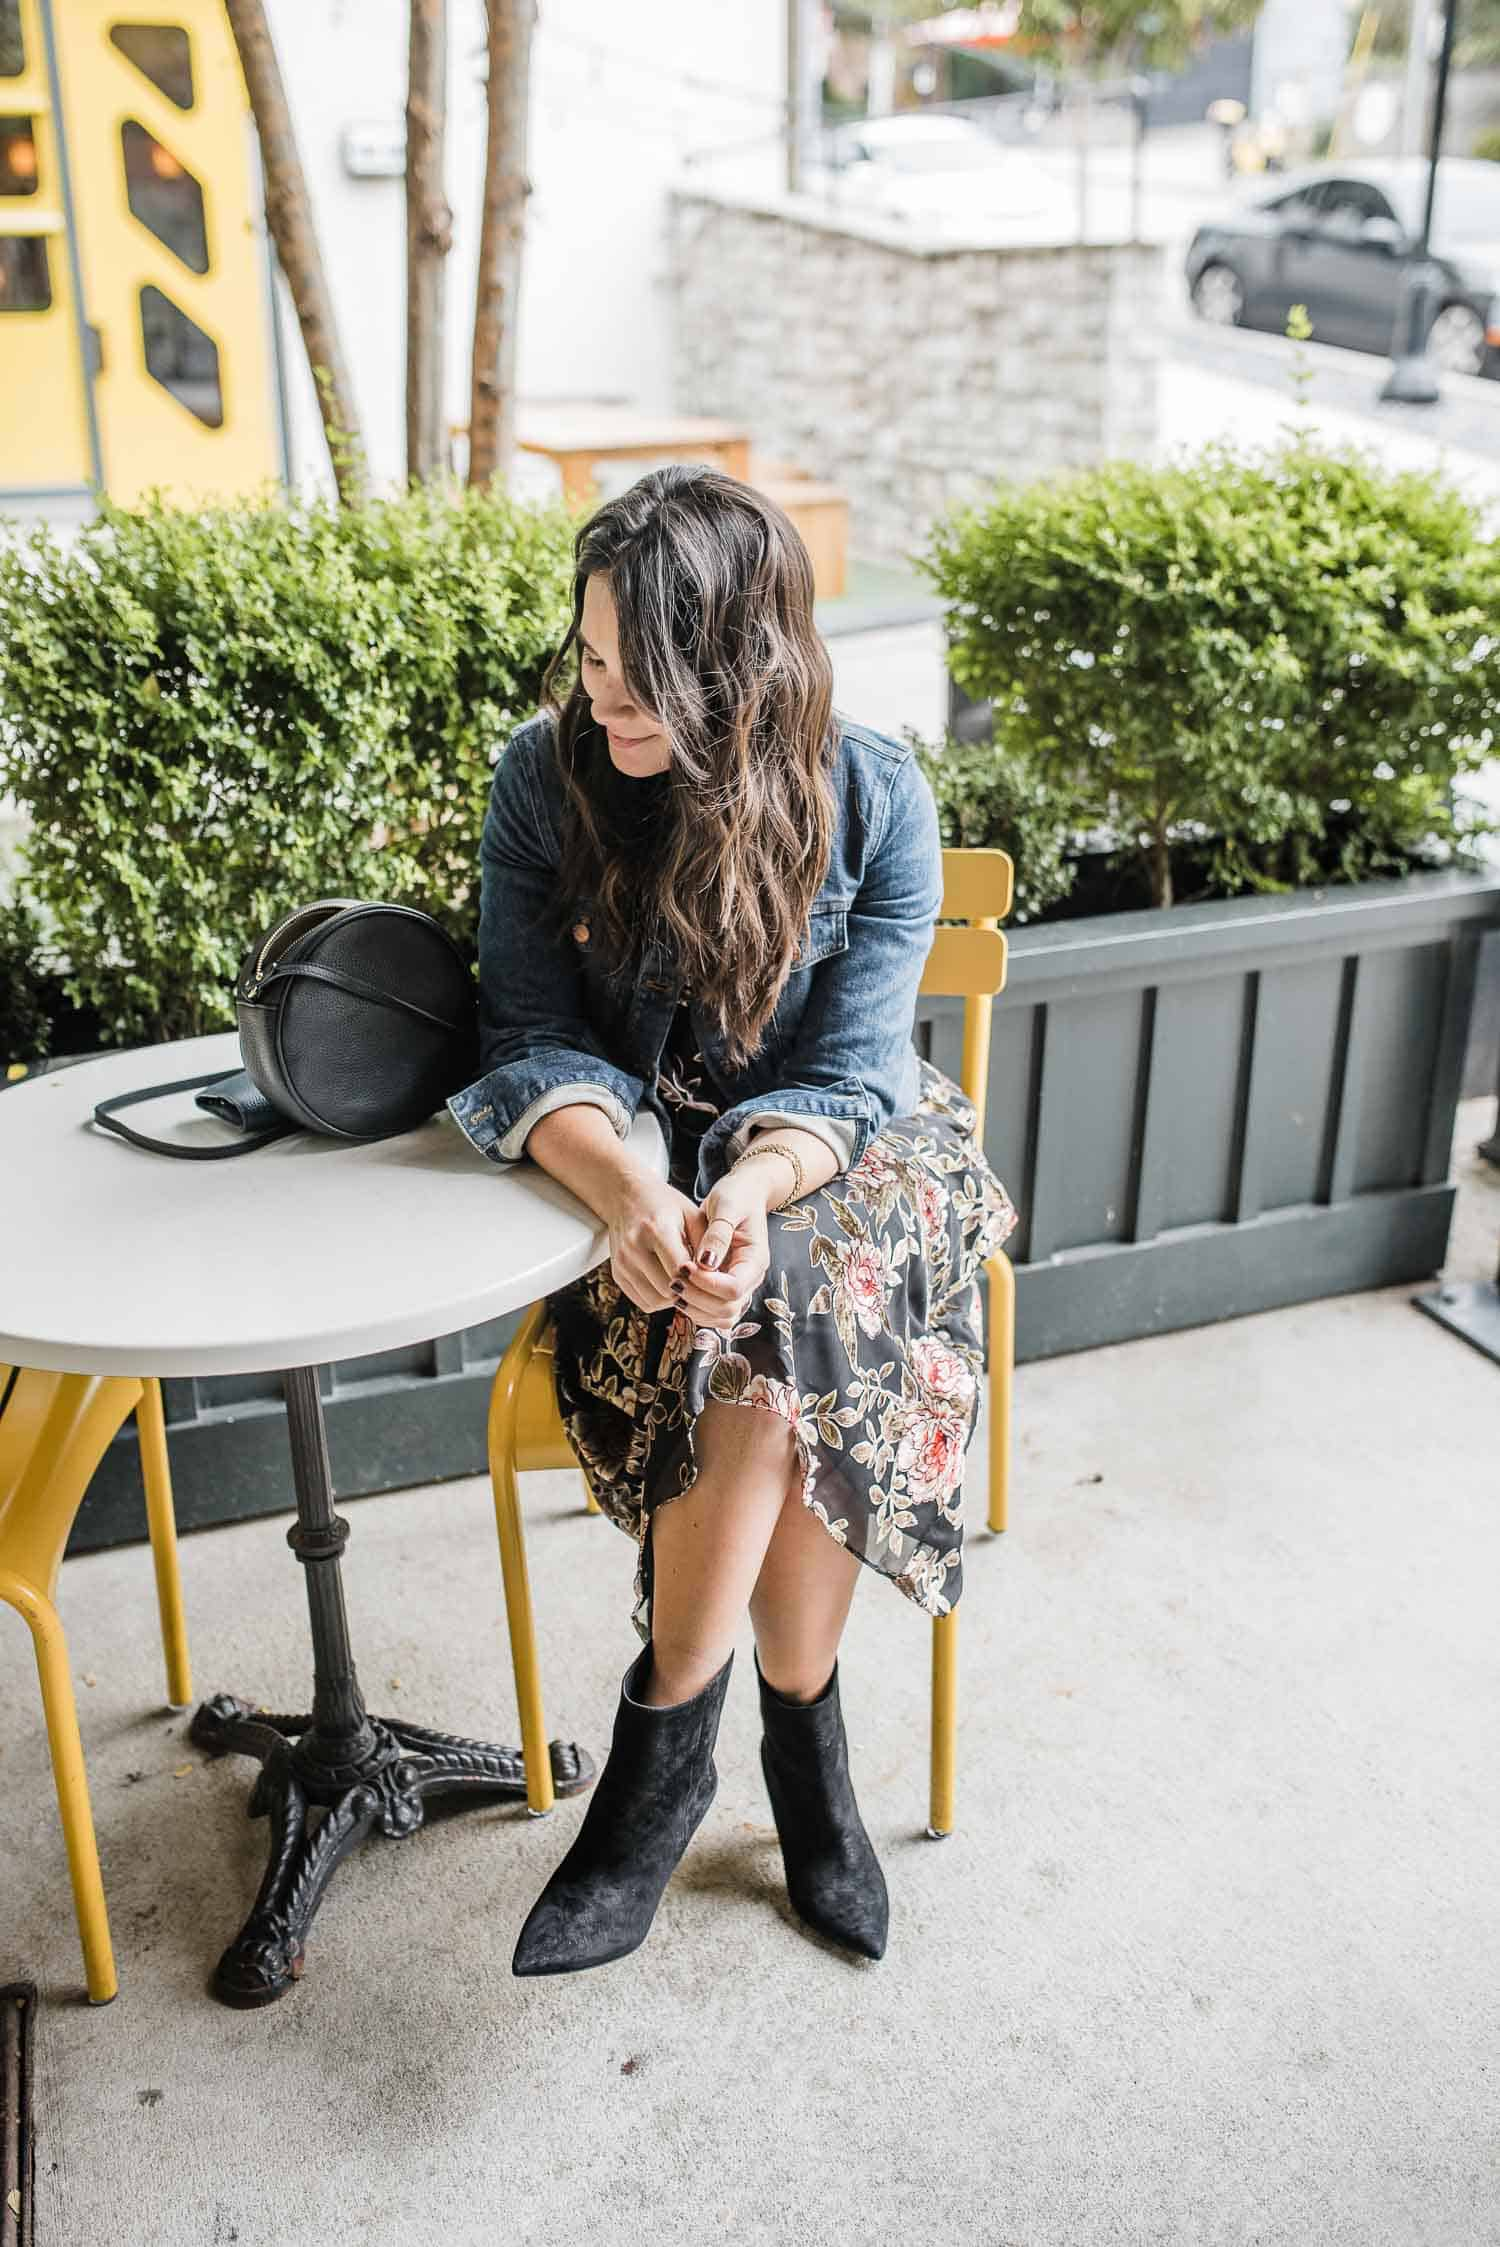 Vince Camuto Floral Dress • Vince Camuto Regina Boot • Madewell Jacket